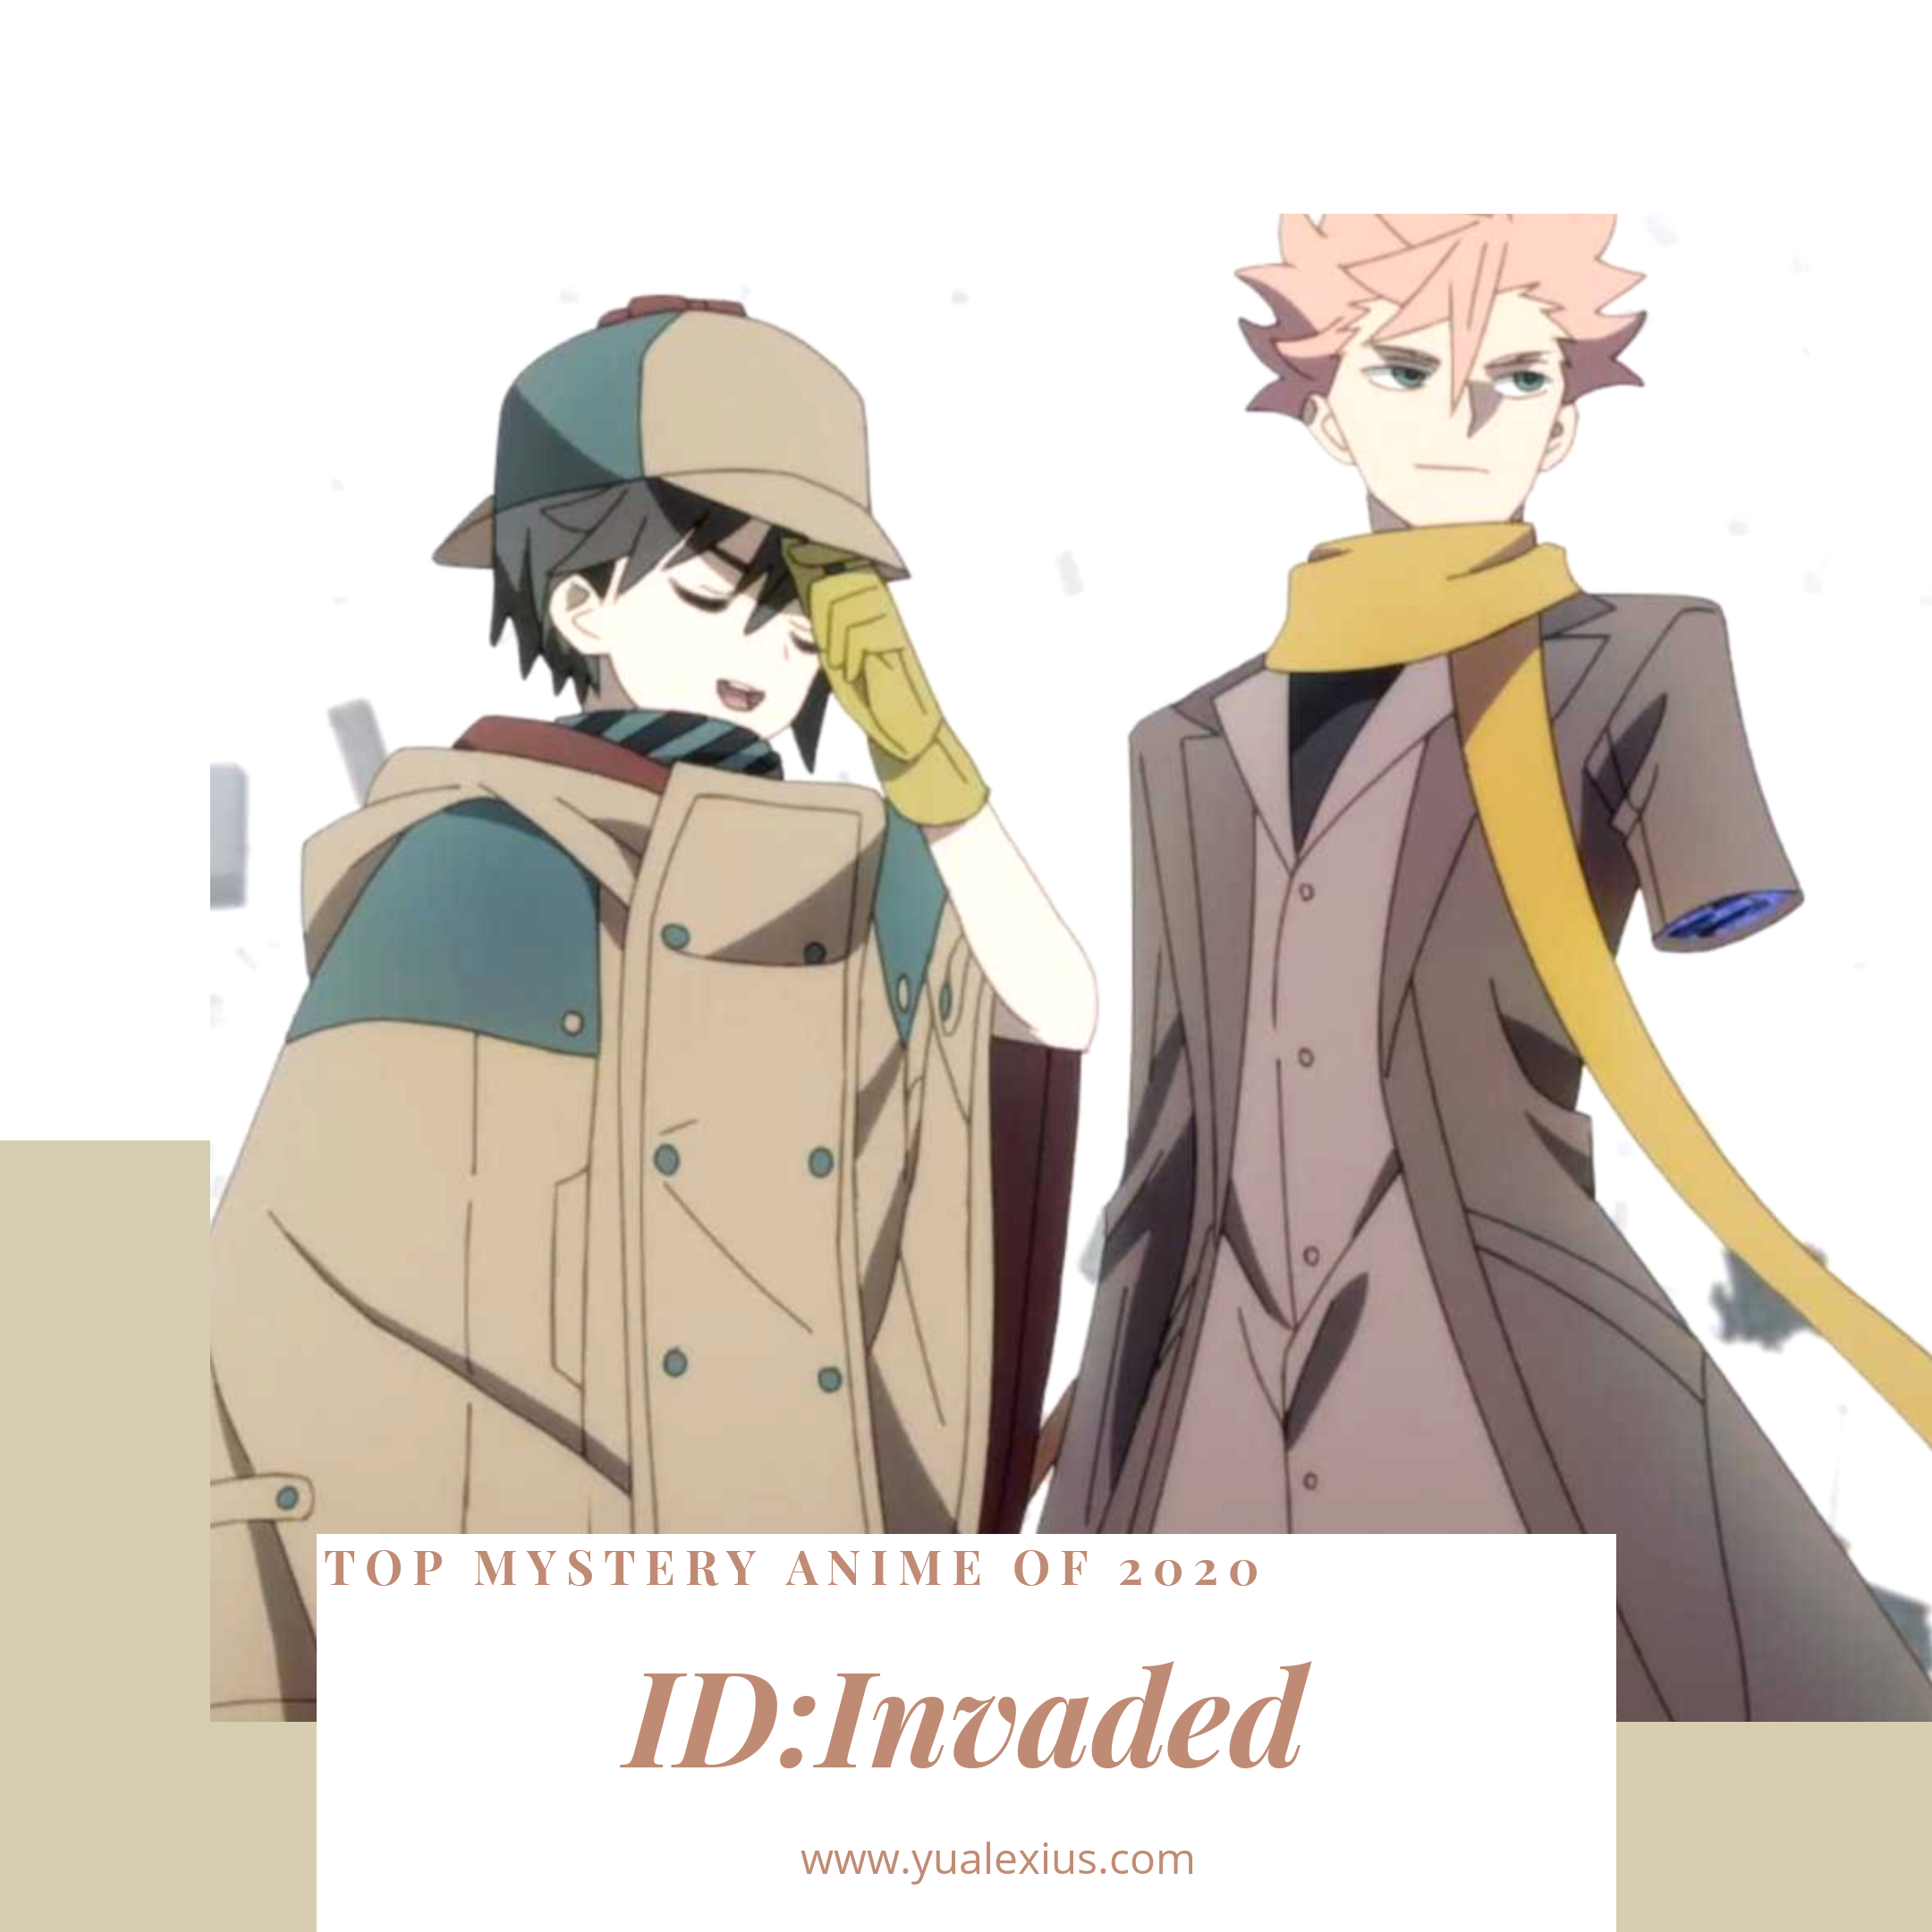 ID:Invaded anime